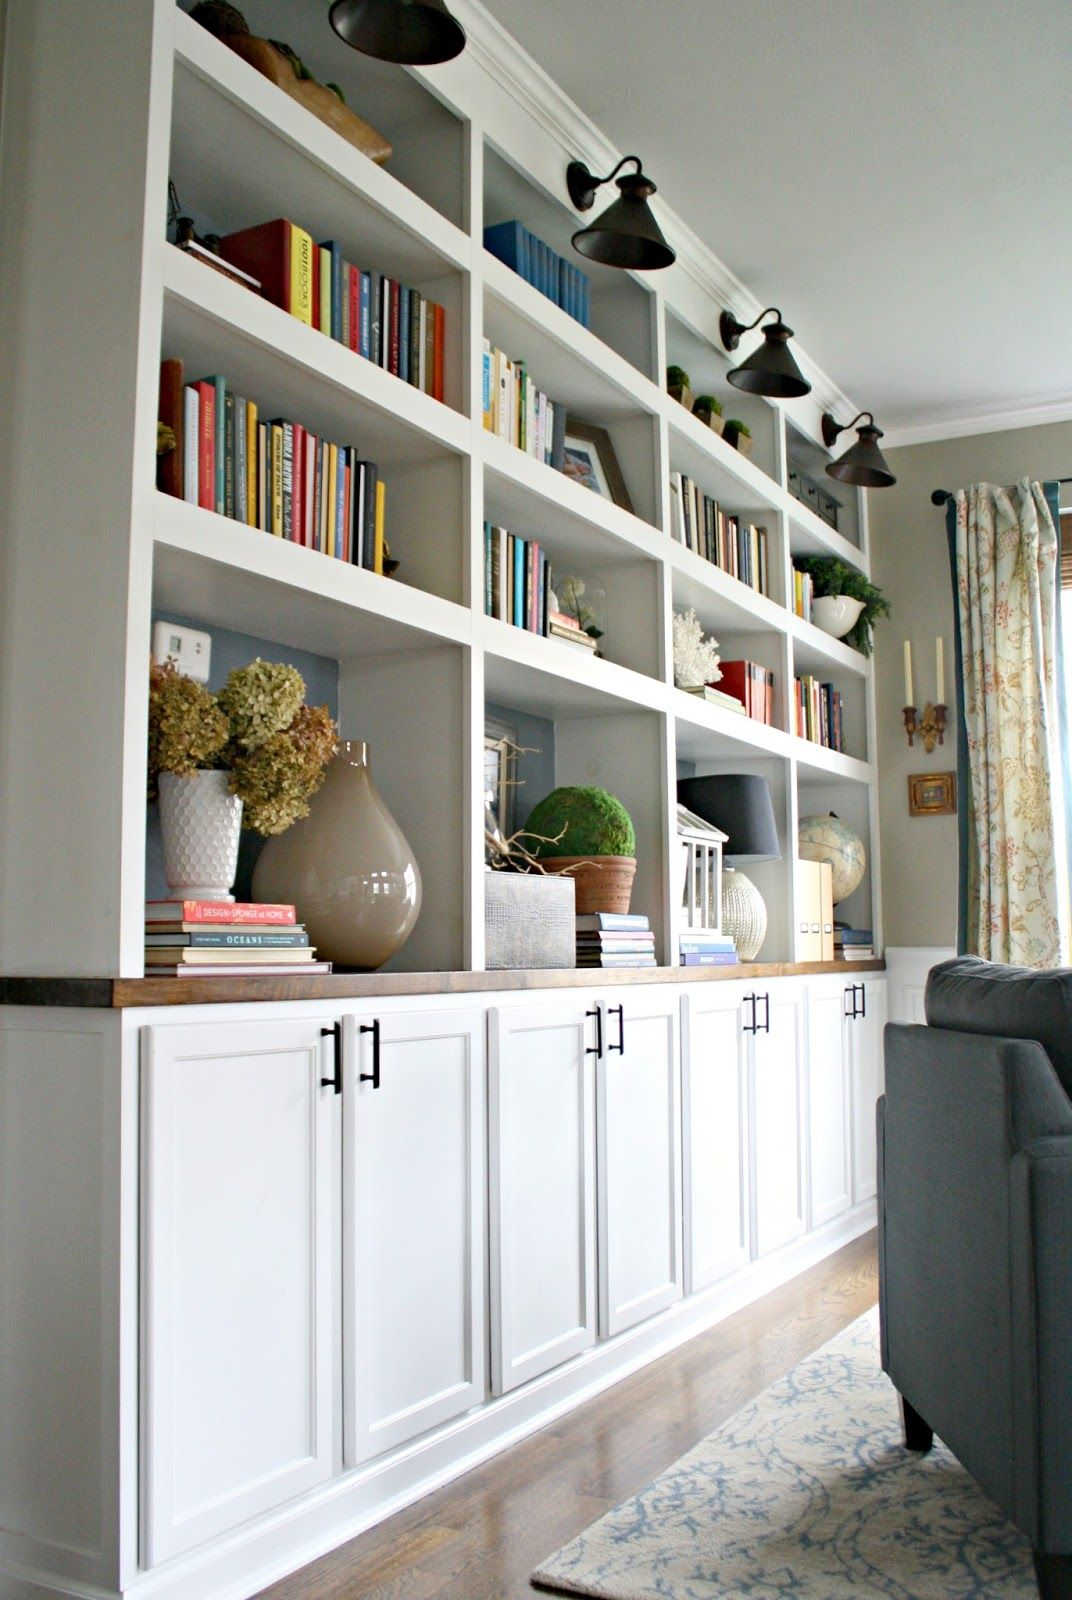 Unique Wall Unit For Drawing Room Homedecoration: Adding Character Where There Was None